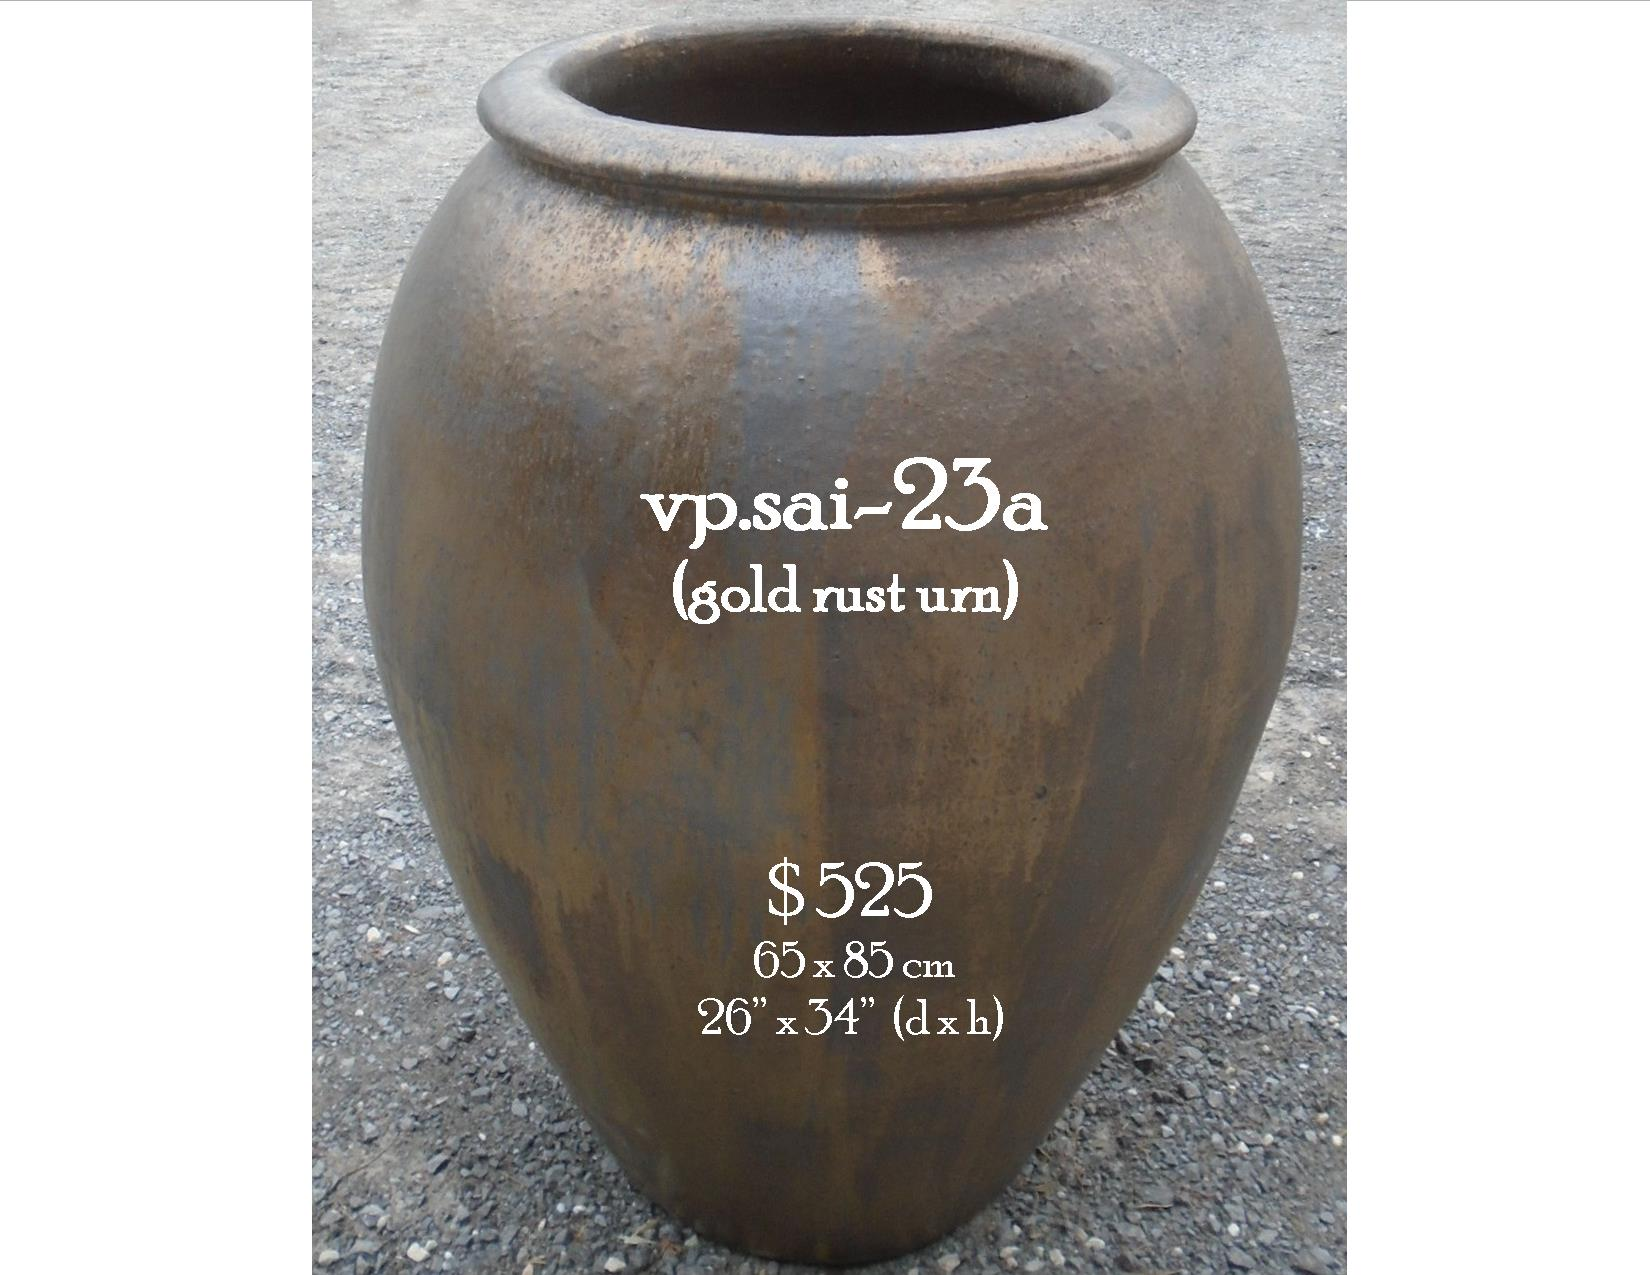 vp.sai-23a  gold rust urn